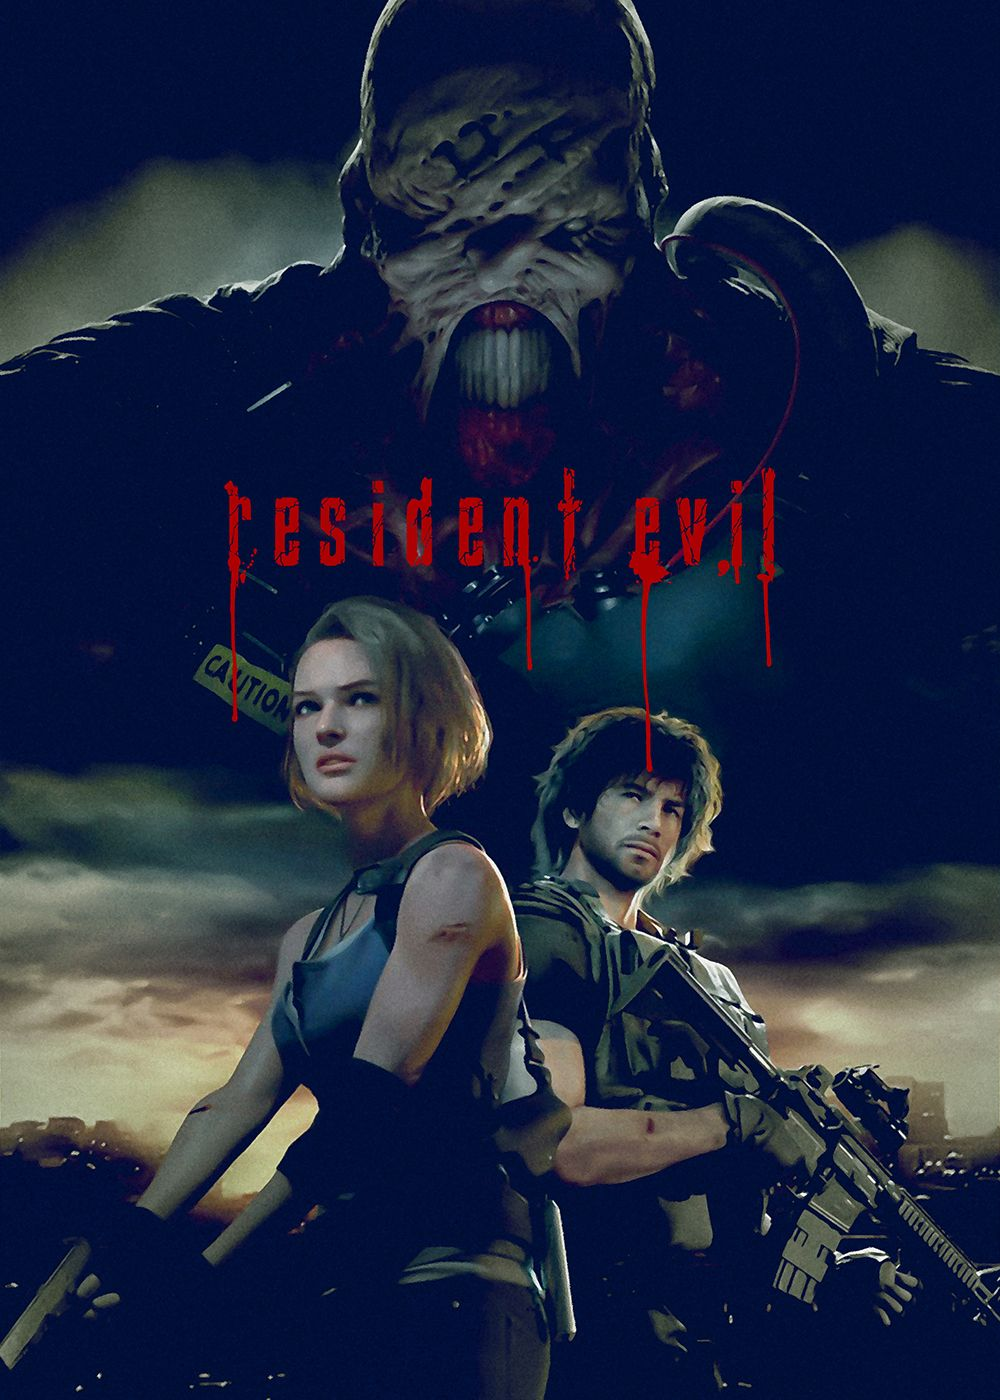 Gaming Resident Evil Vintage Posters Poster Print Metal Posters